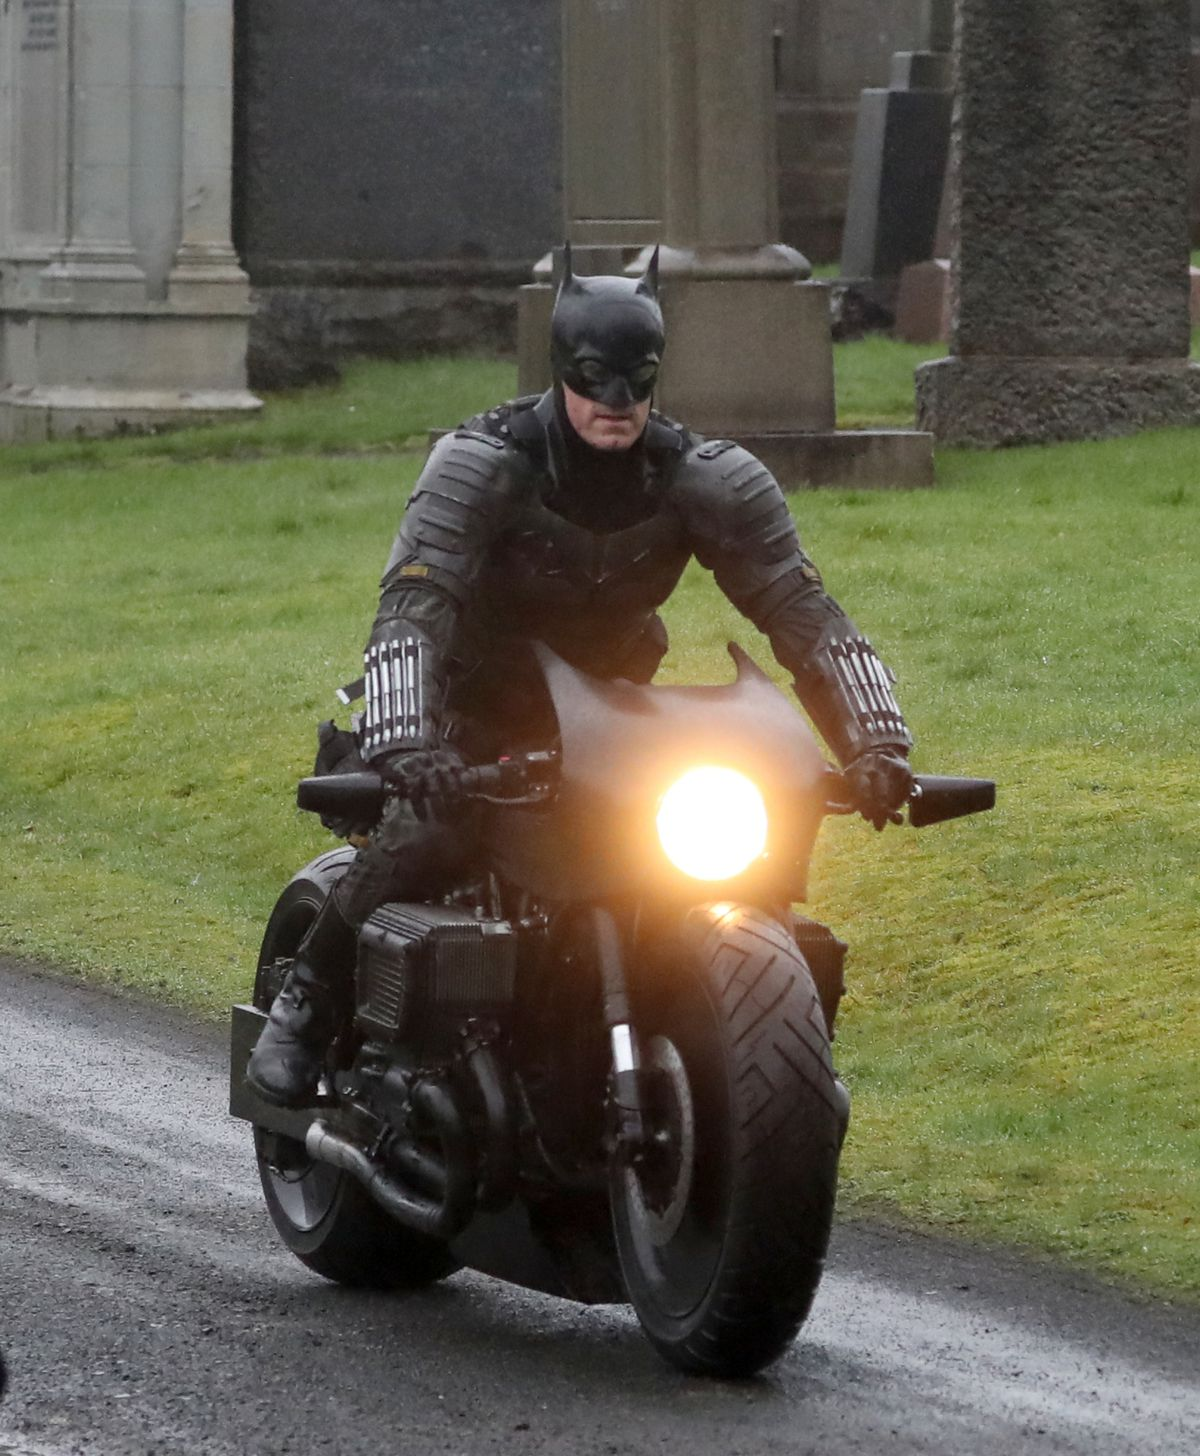 The Batman Set Photos Reveal Pattinson's Full Costume And